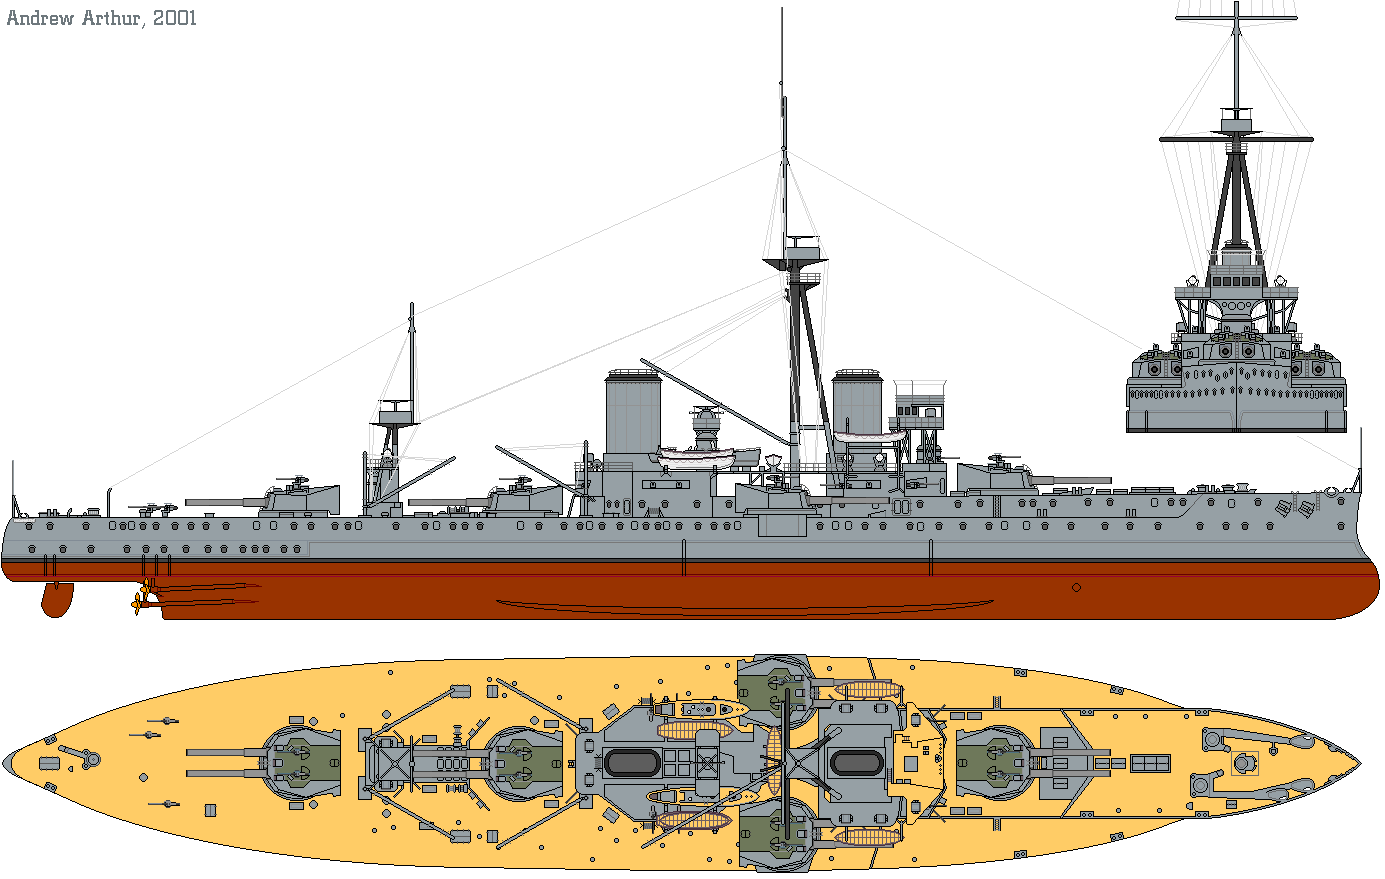 HMS_Dreadnought_(1911)_profile_drawing.p